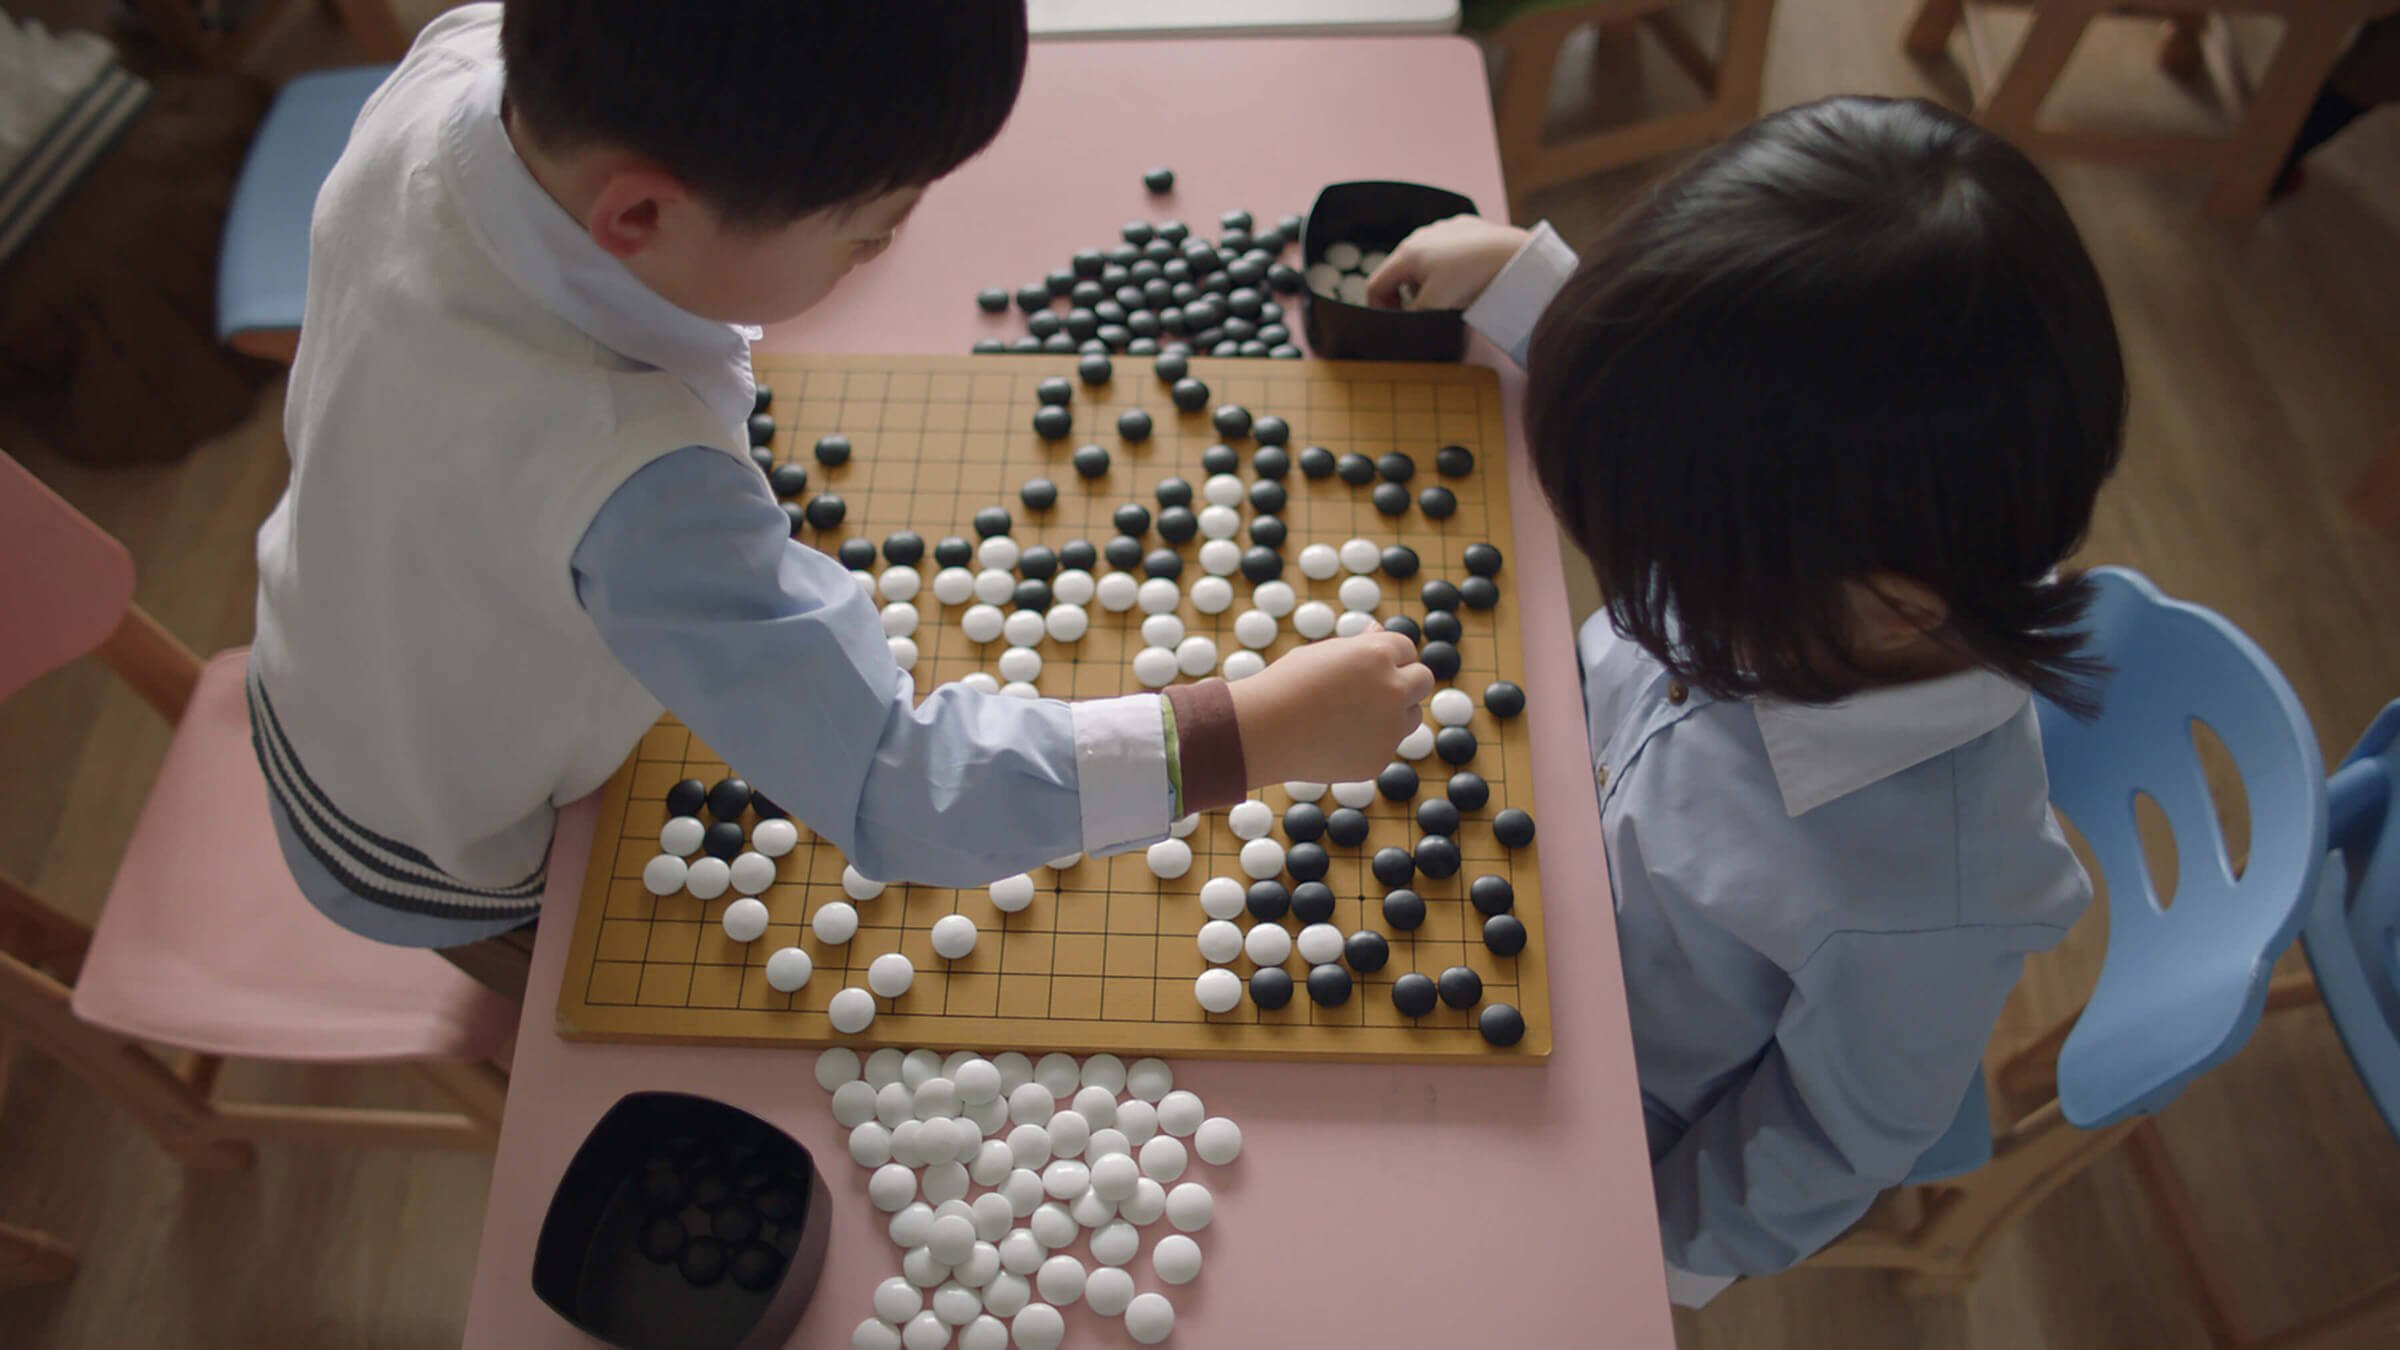 Google's DeepMind unveils self-teaching AI software, AlphaGo Zero